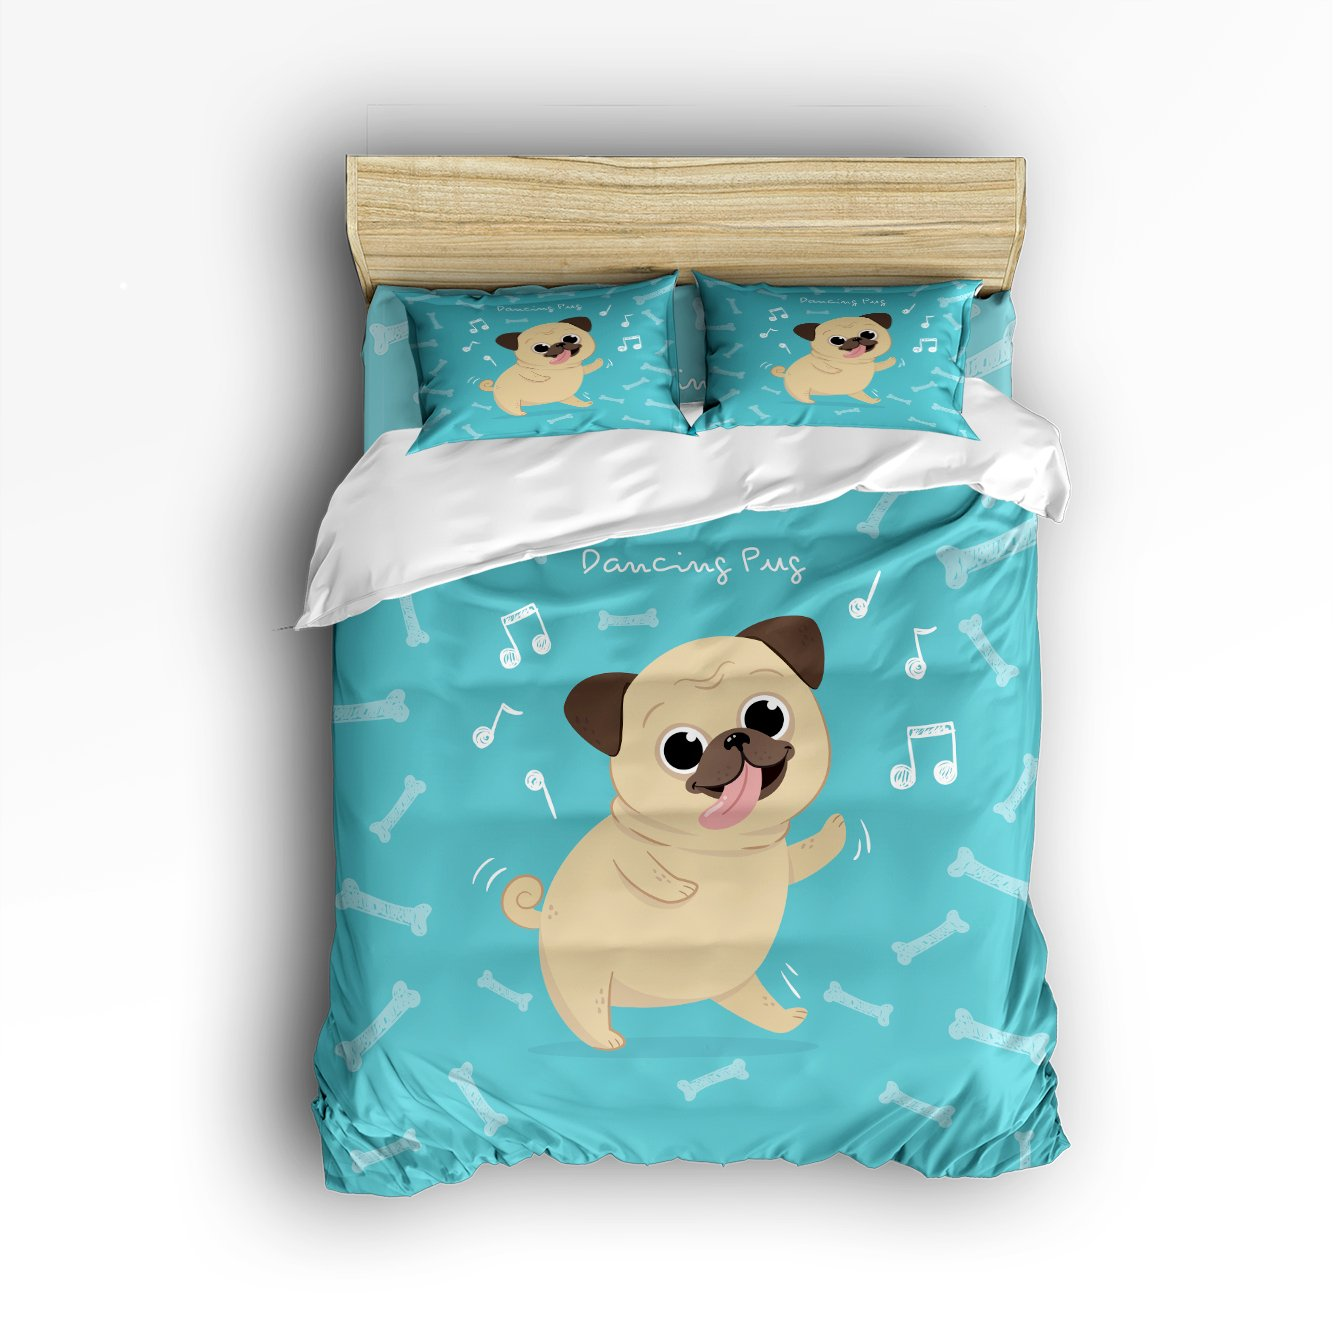 Libaoge 4 Piece Bed Sheets Set, Lovely Cute Dancing Pug Dog with Bones Background, 1 Flat Sheet 1 Duvet Cover and 2 Pillow Cases